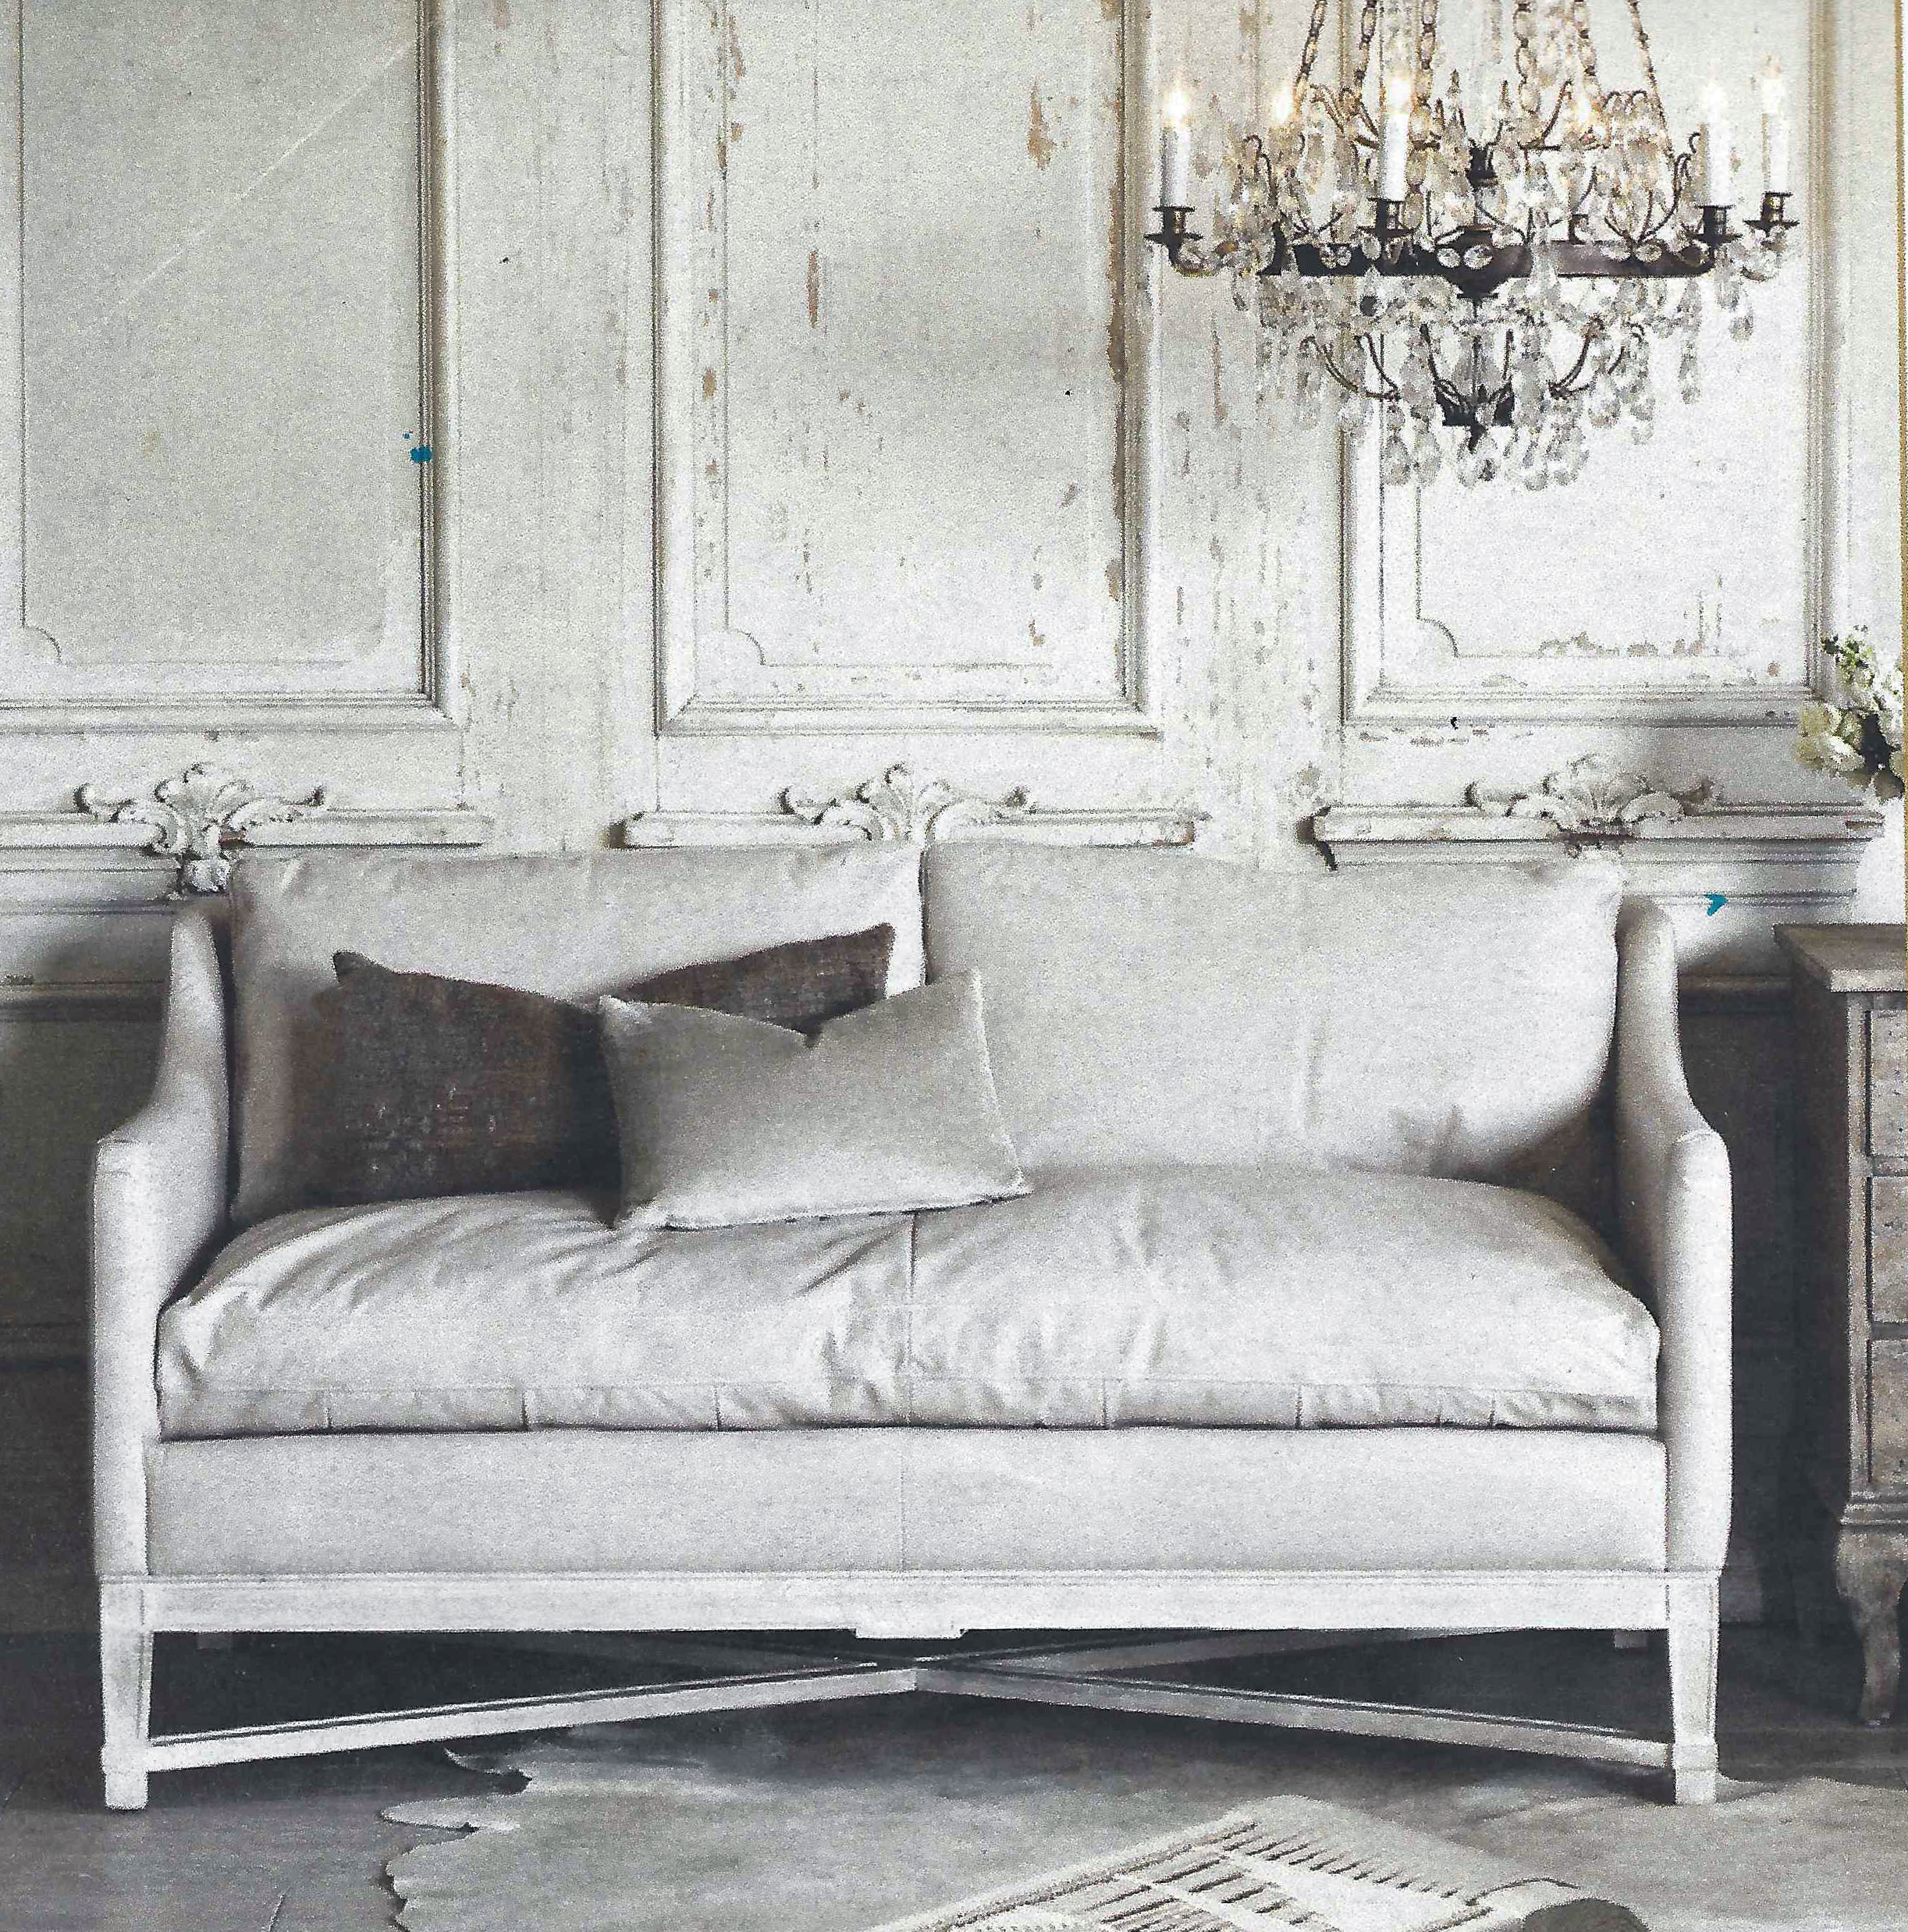 Loveseat form Ana Donohue Interiors Boutique Design Studio